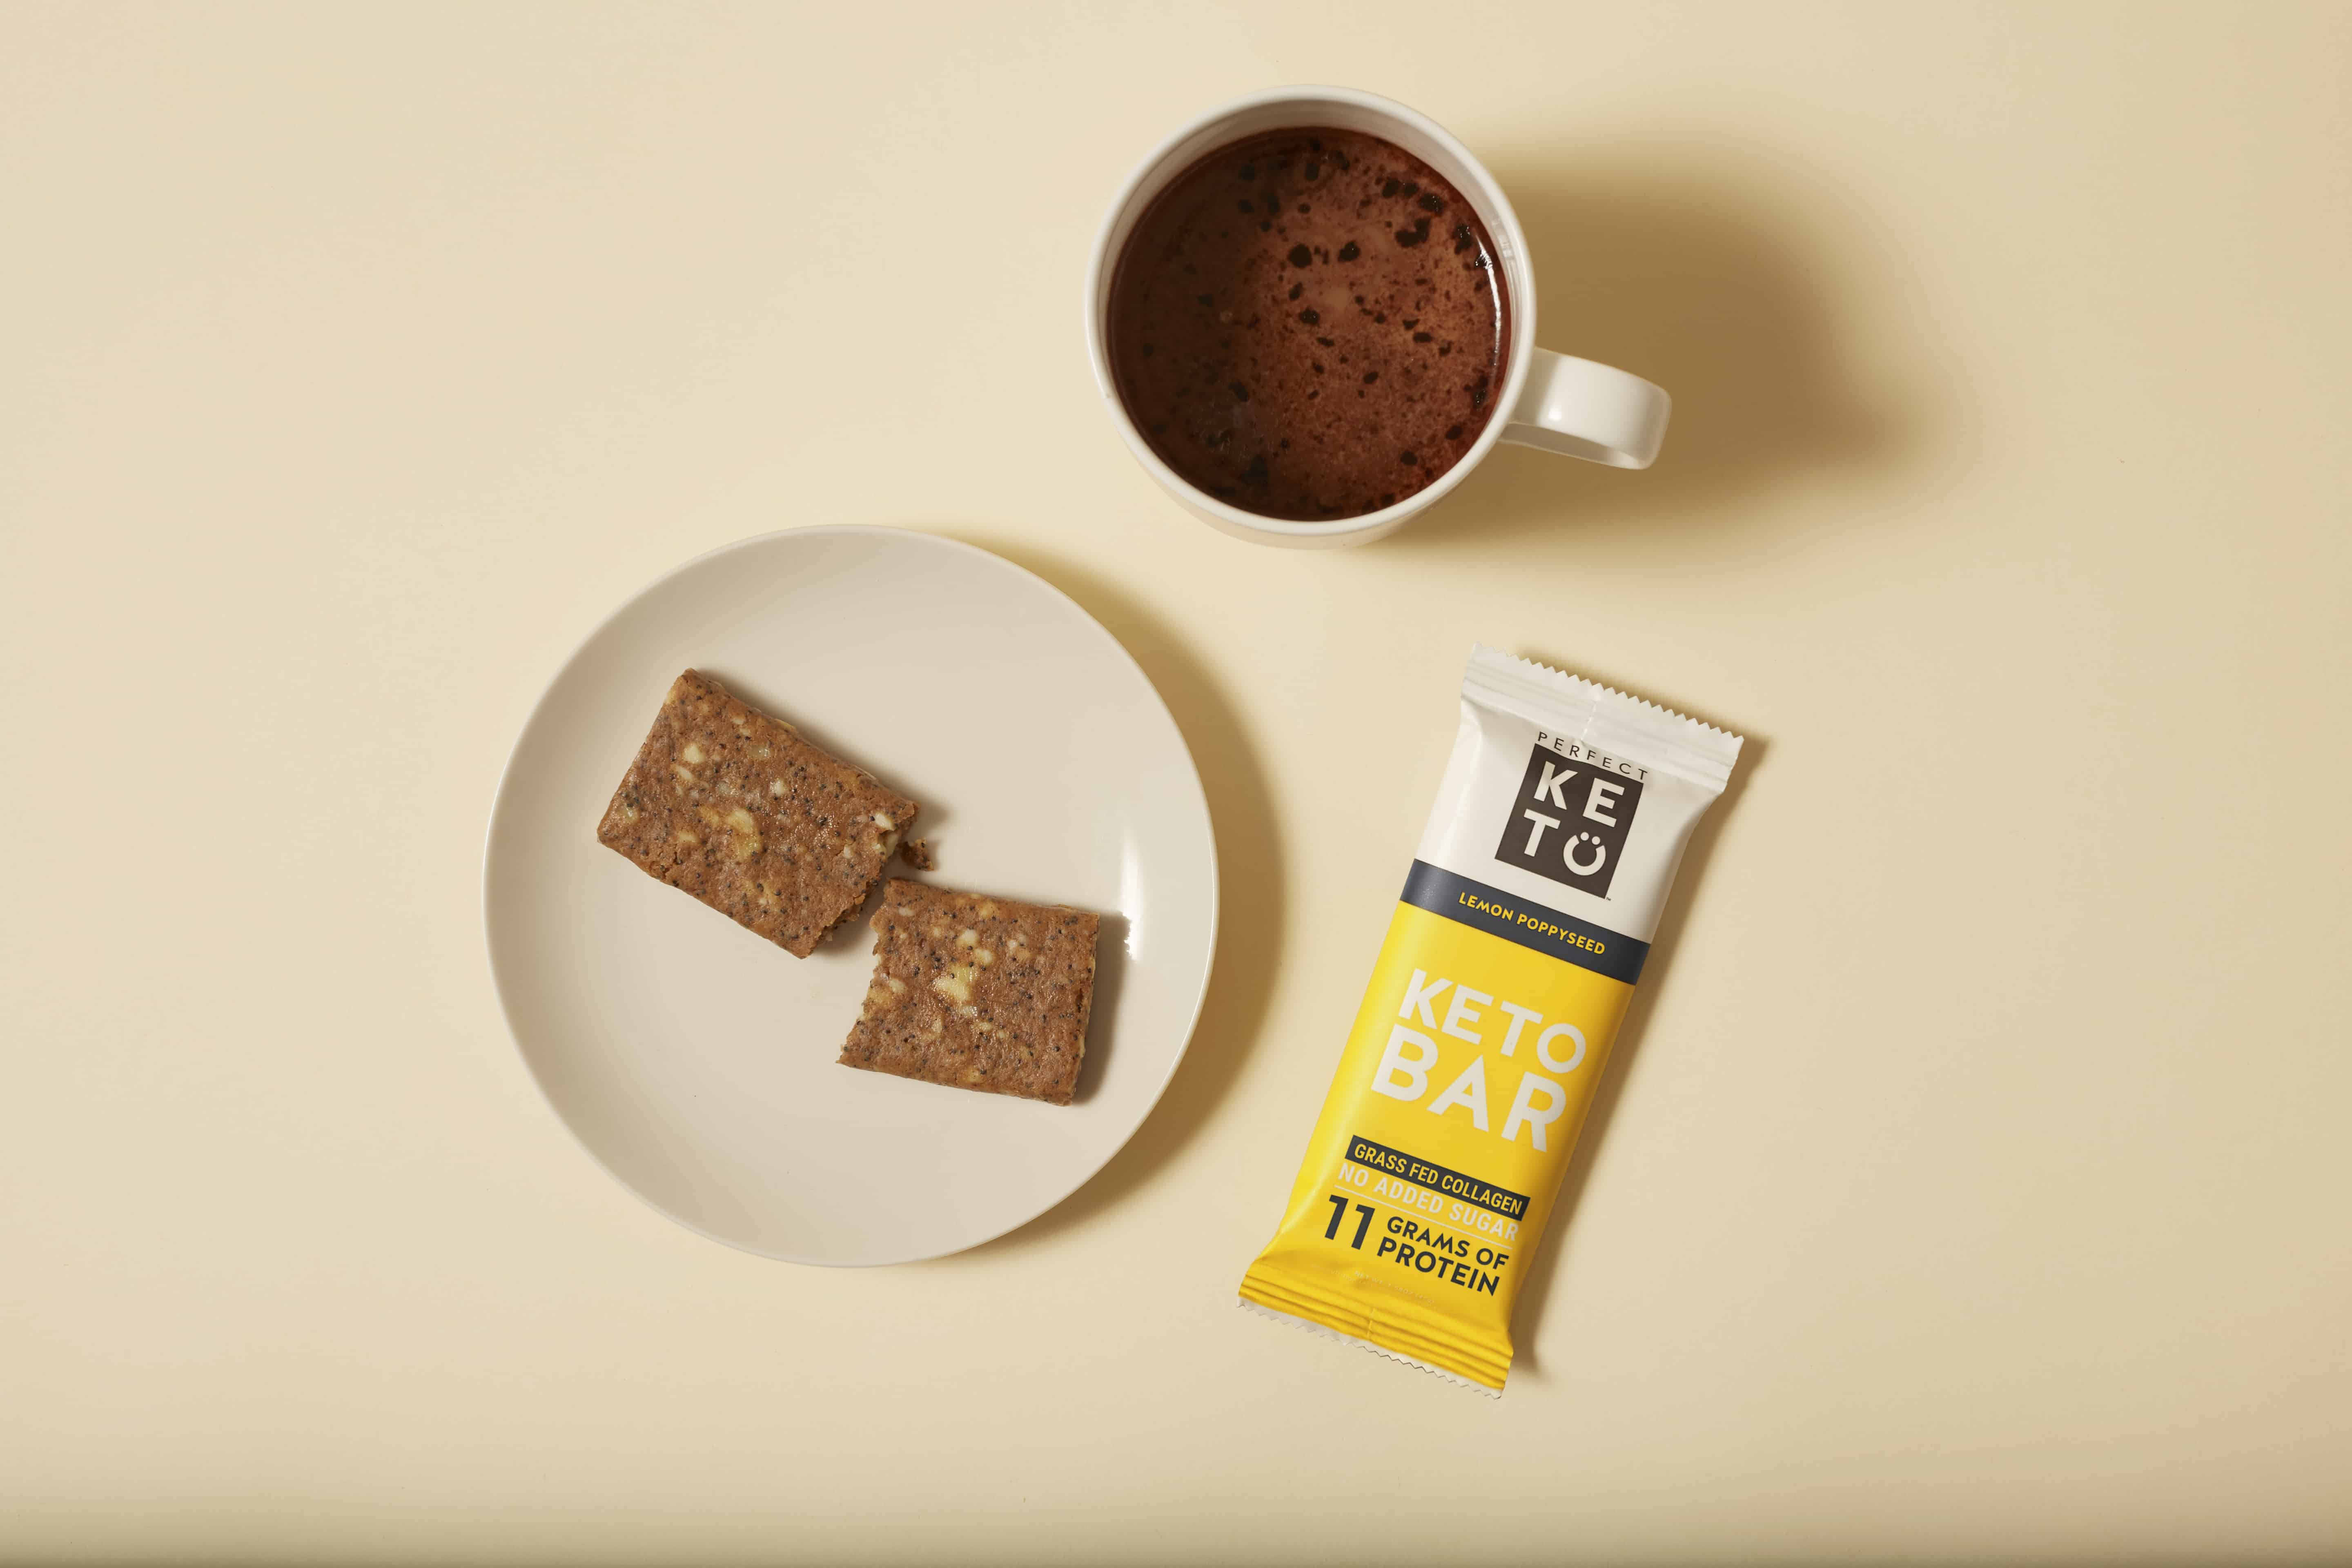 Perfect Keto Keto Bars with a cup of coffee